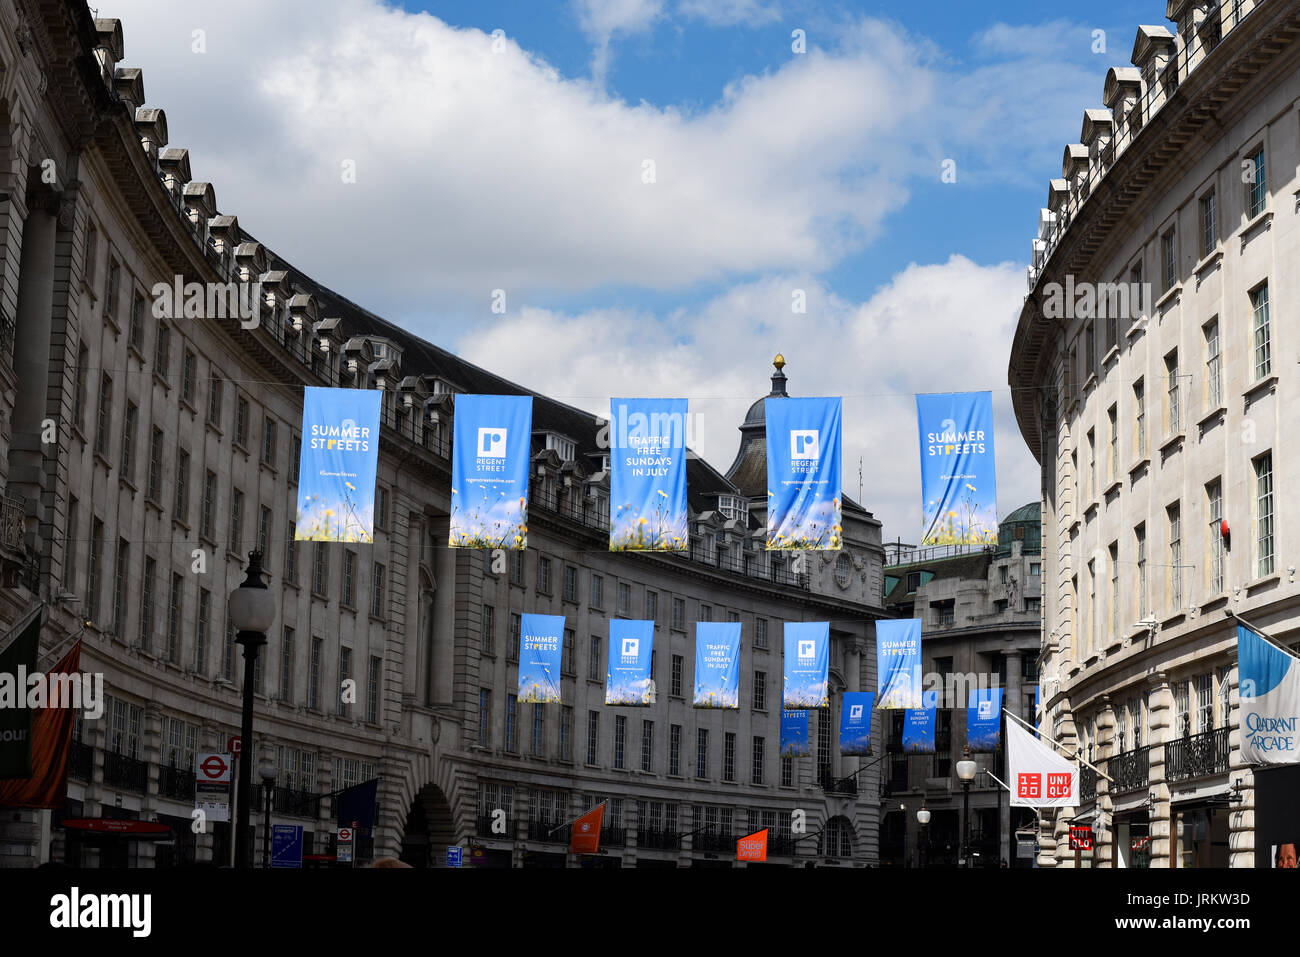 Banners along Regent Street, London announcing traffic free sundays. Space for copy - Stock Image